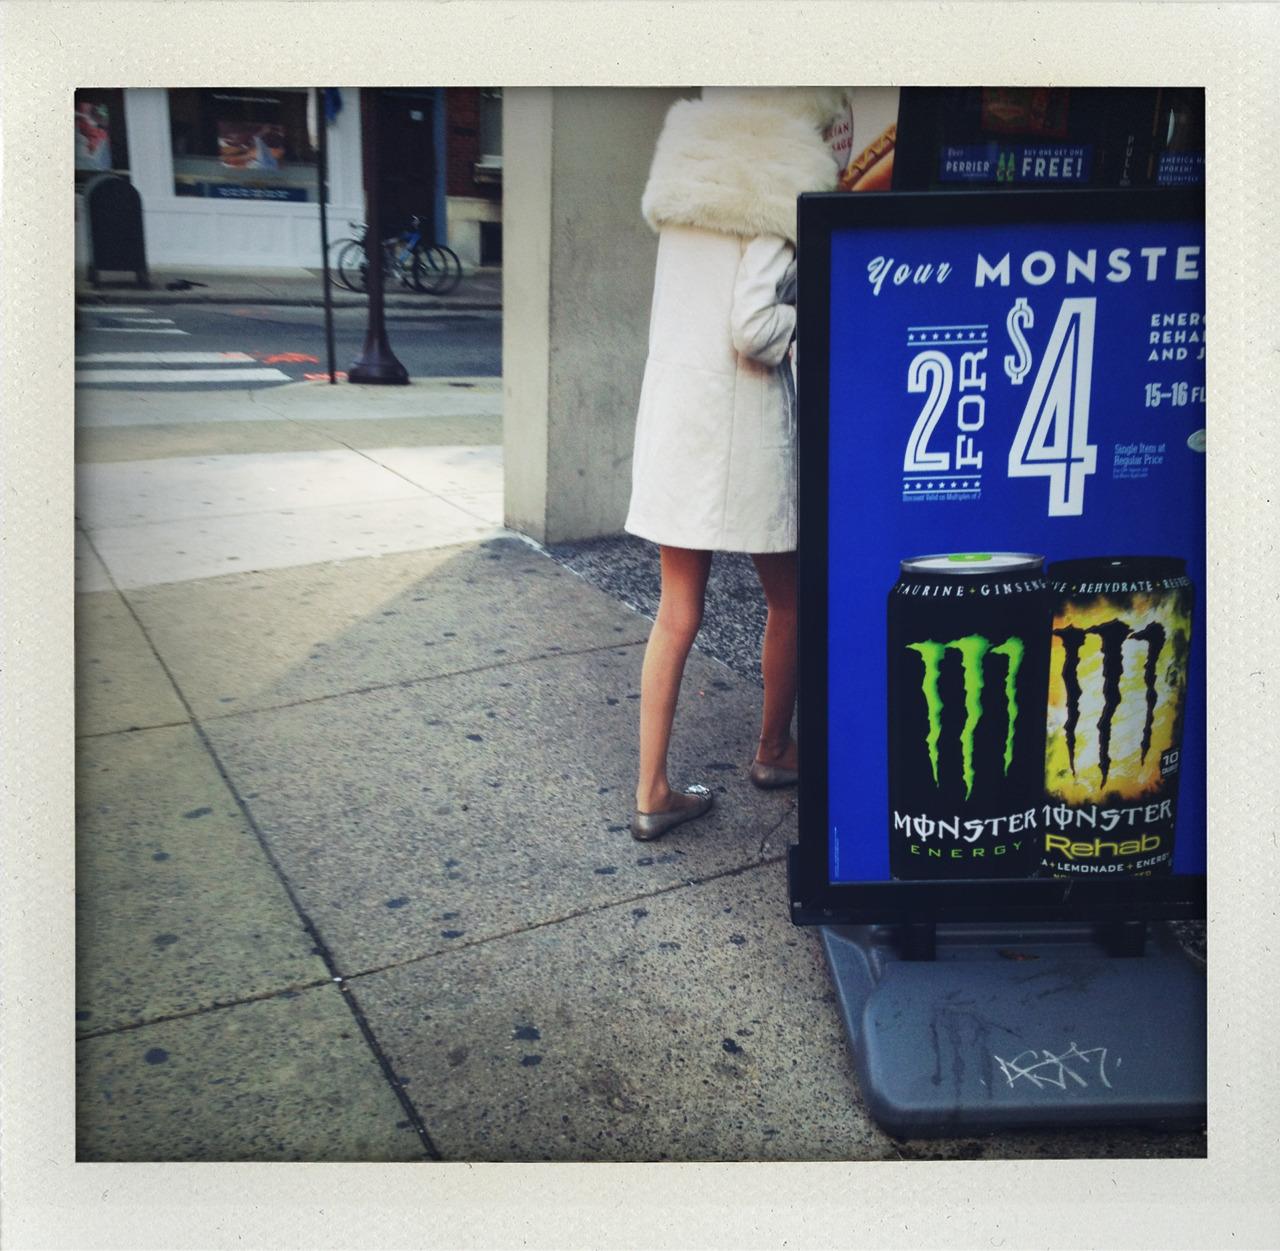 Gaga going for the monster drink.